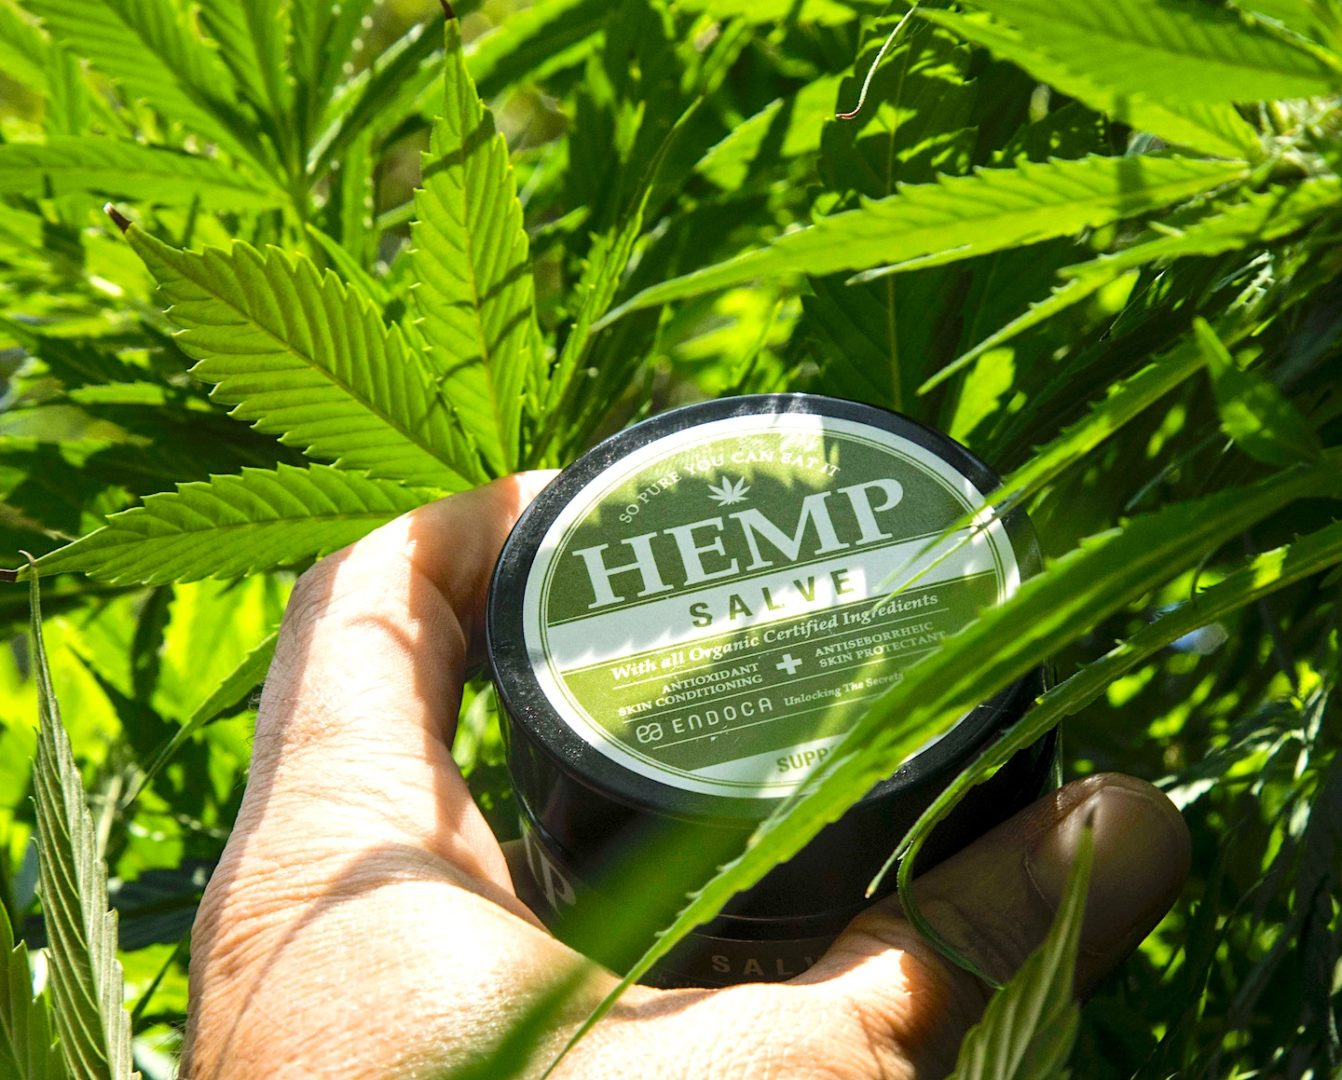 Bill legalizing hemp, CBD oil will be signed into law this